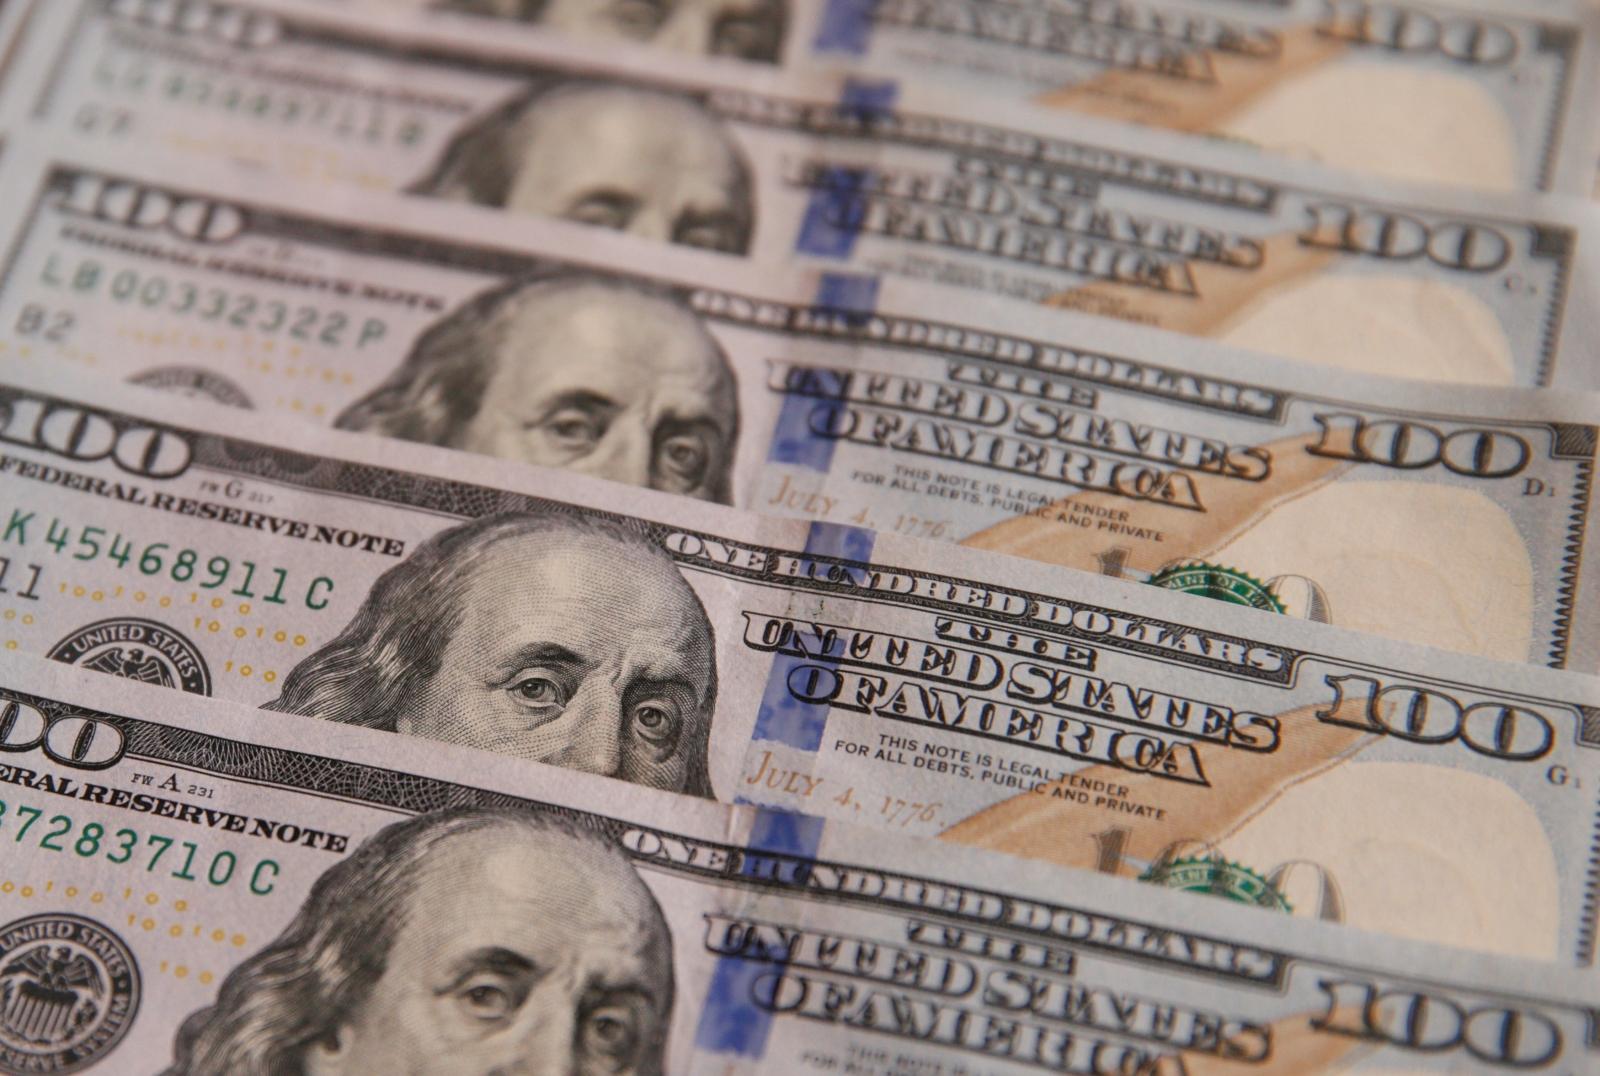 Having too much money can make you unhappy, study finds